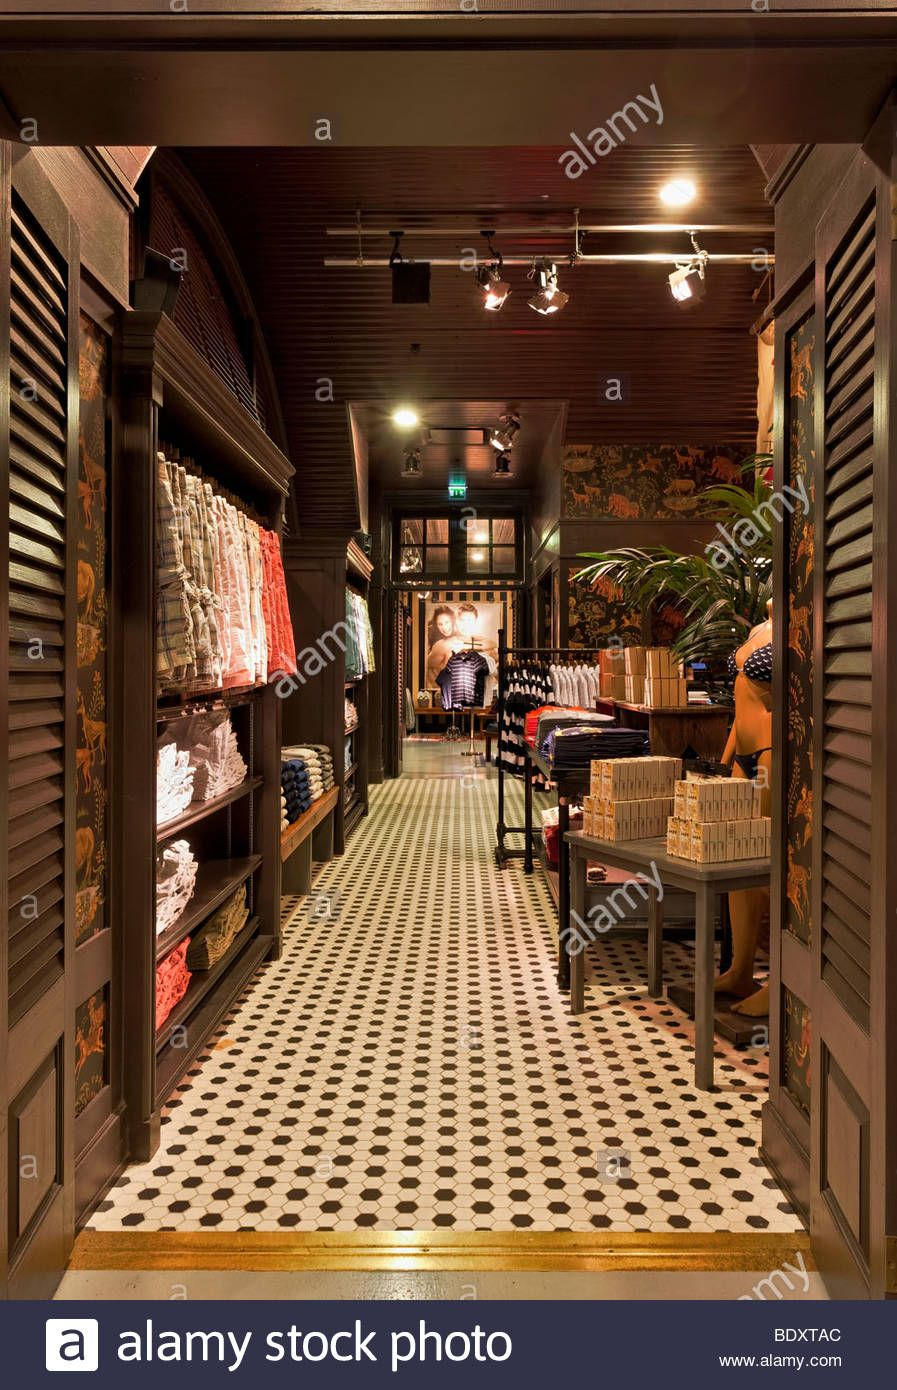 Pin by Brandon Mingo on My A&F House. | Hollister store ...